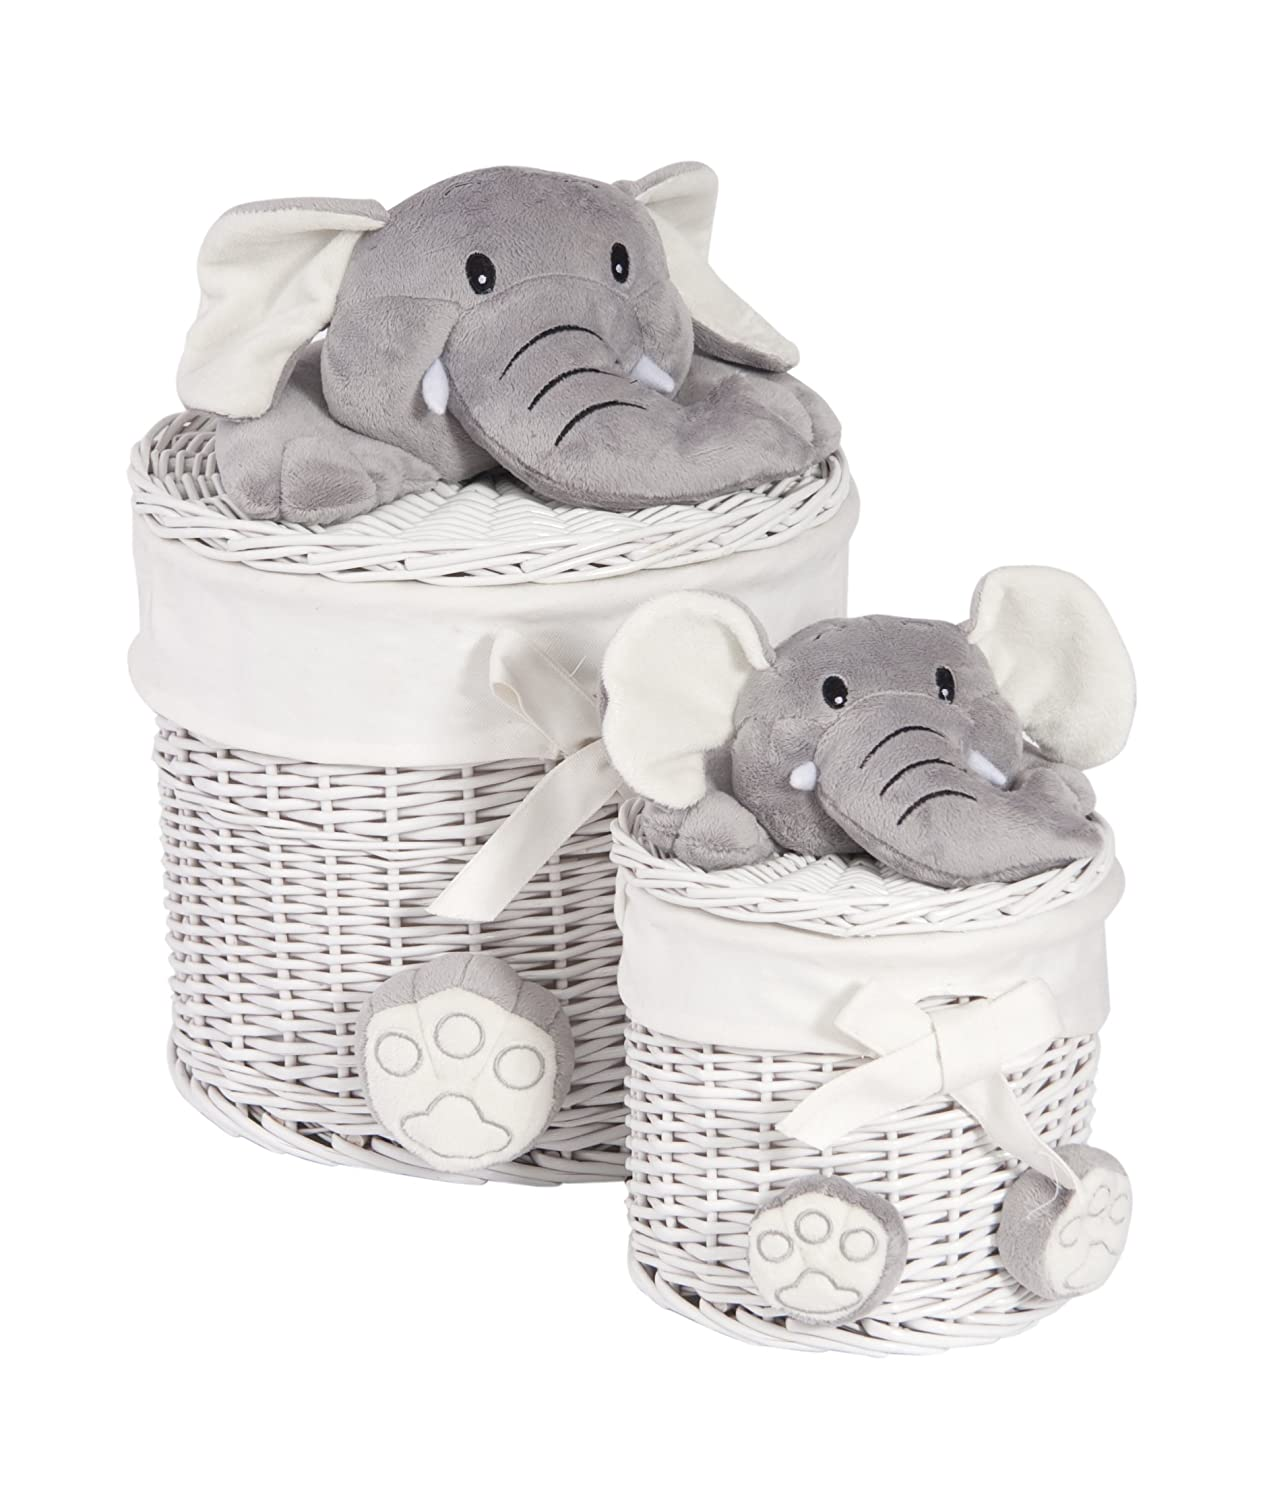 Twin Laundry Baskets Elephant Faces Cotton Lined: Amazon: Kitchen &  Home